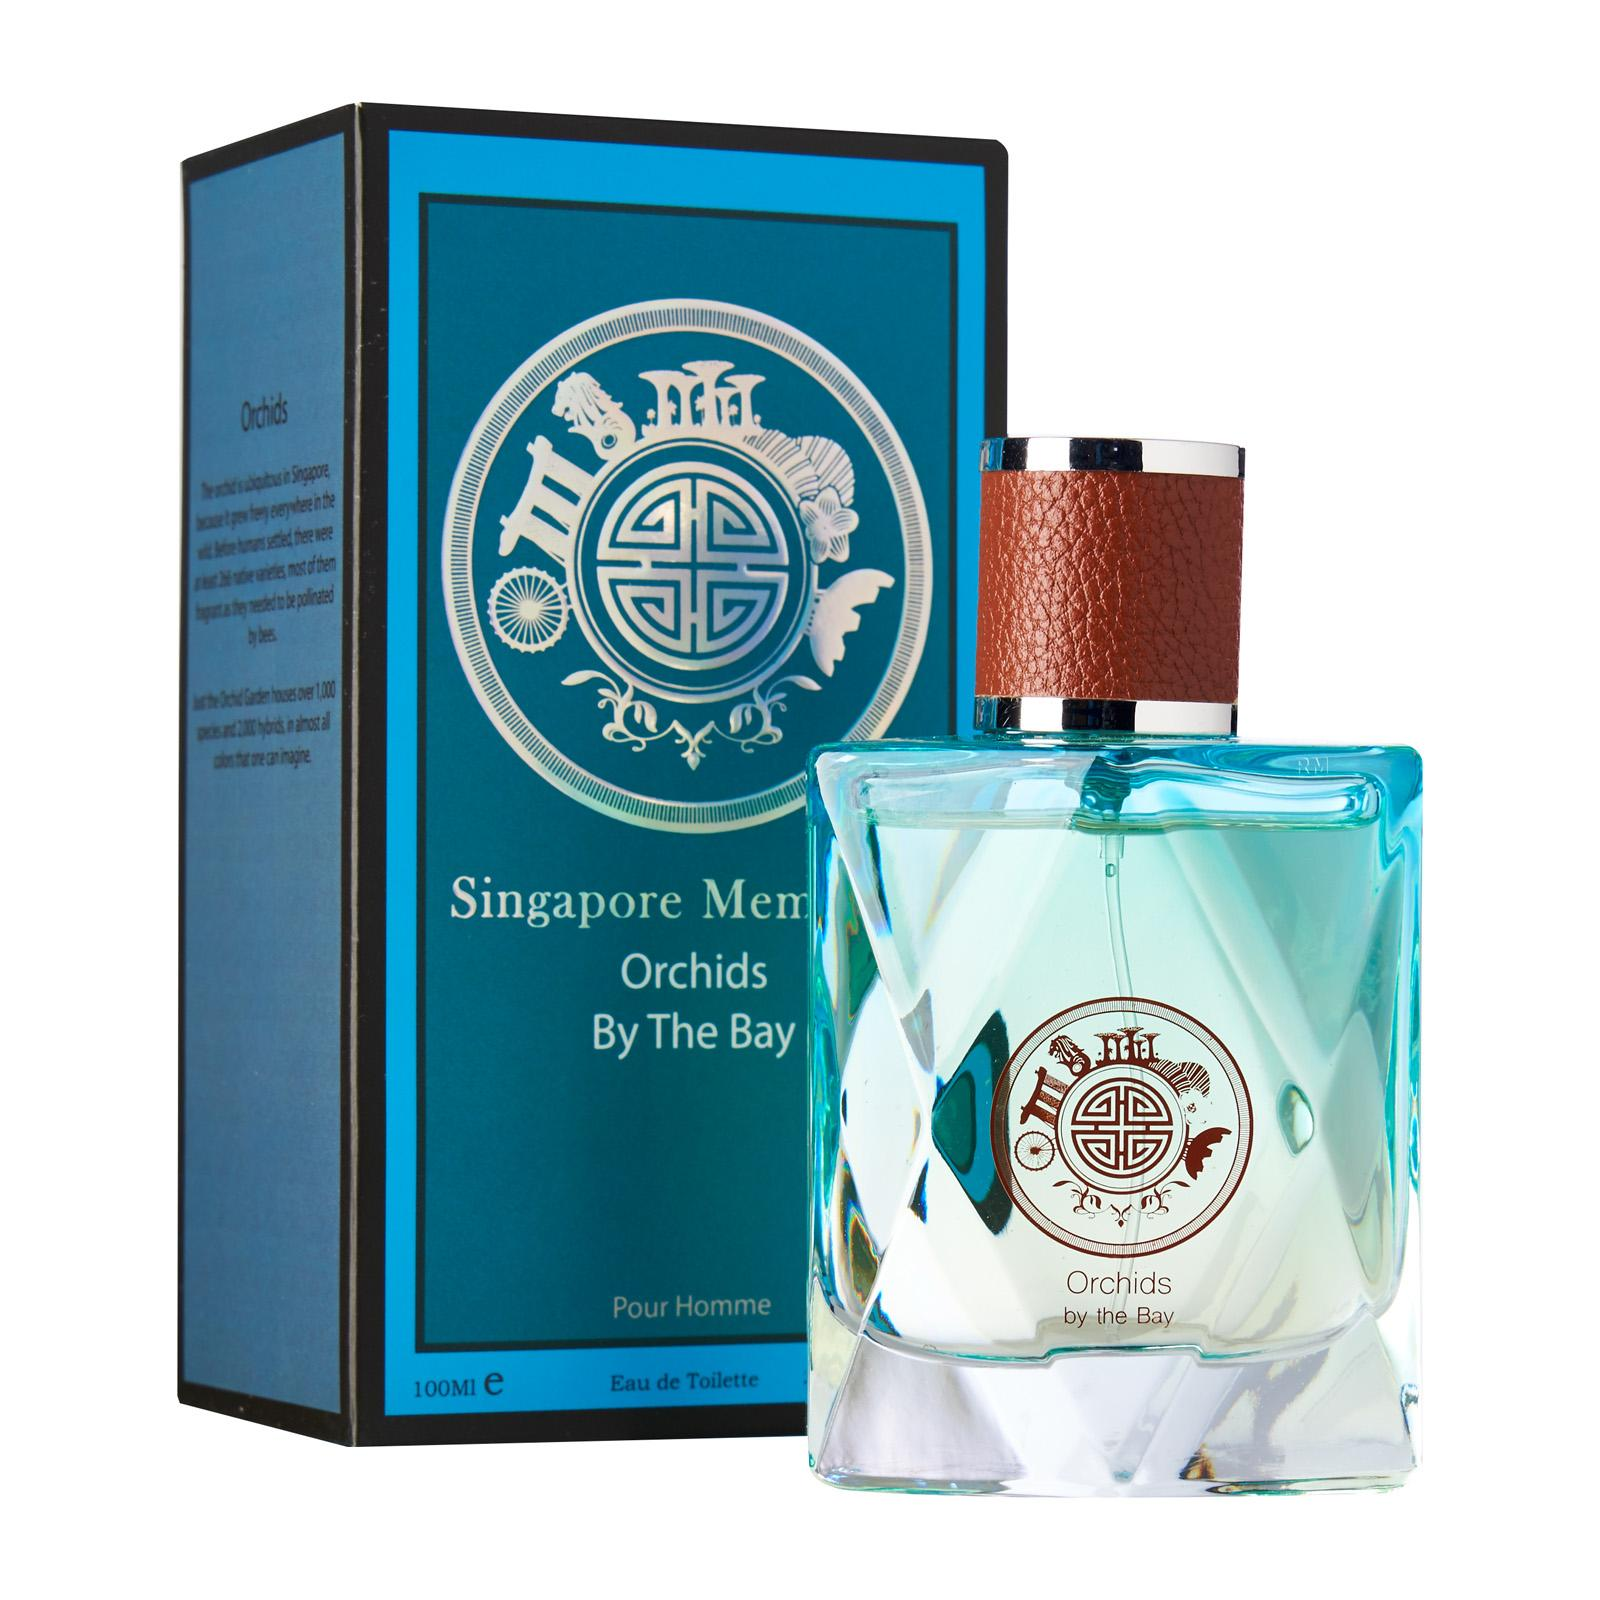 Singapore Perfume Online Store : Singapore Memories , Orchids By The Bay best souvenir and gift from Singapore